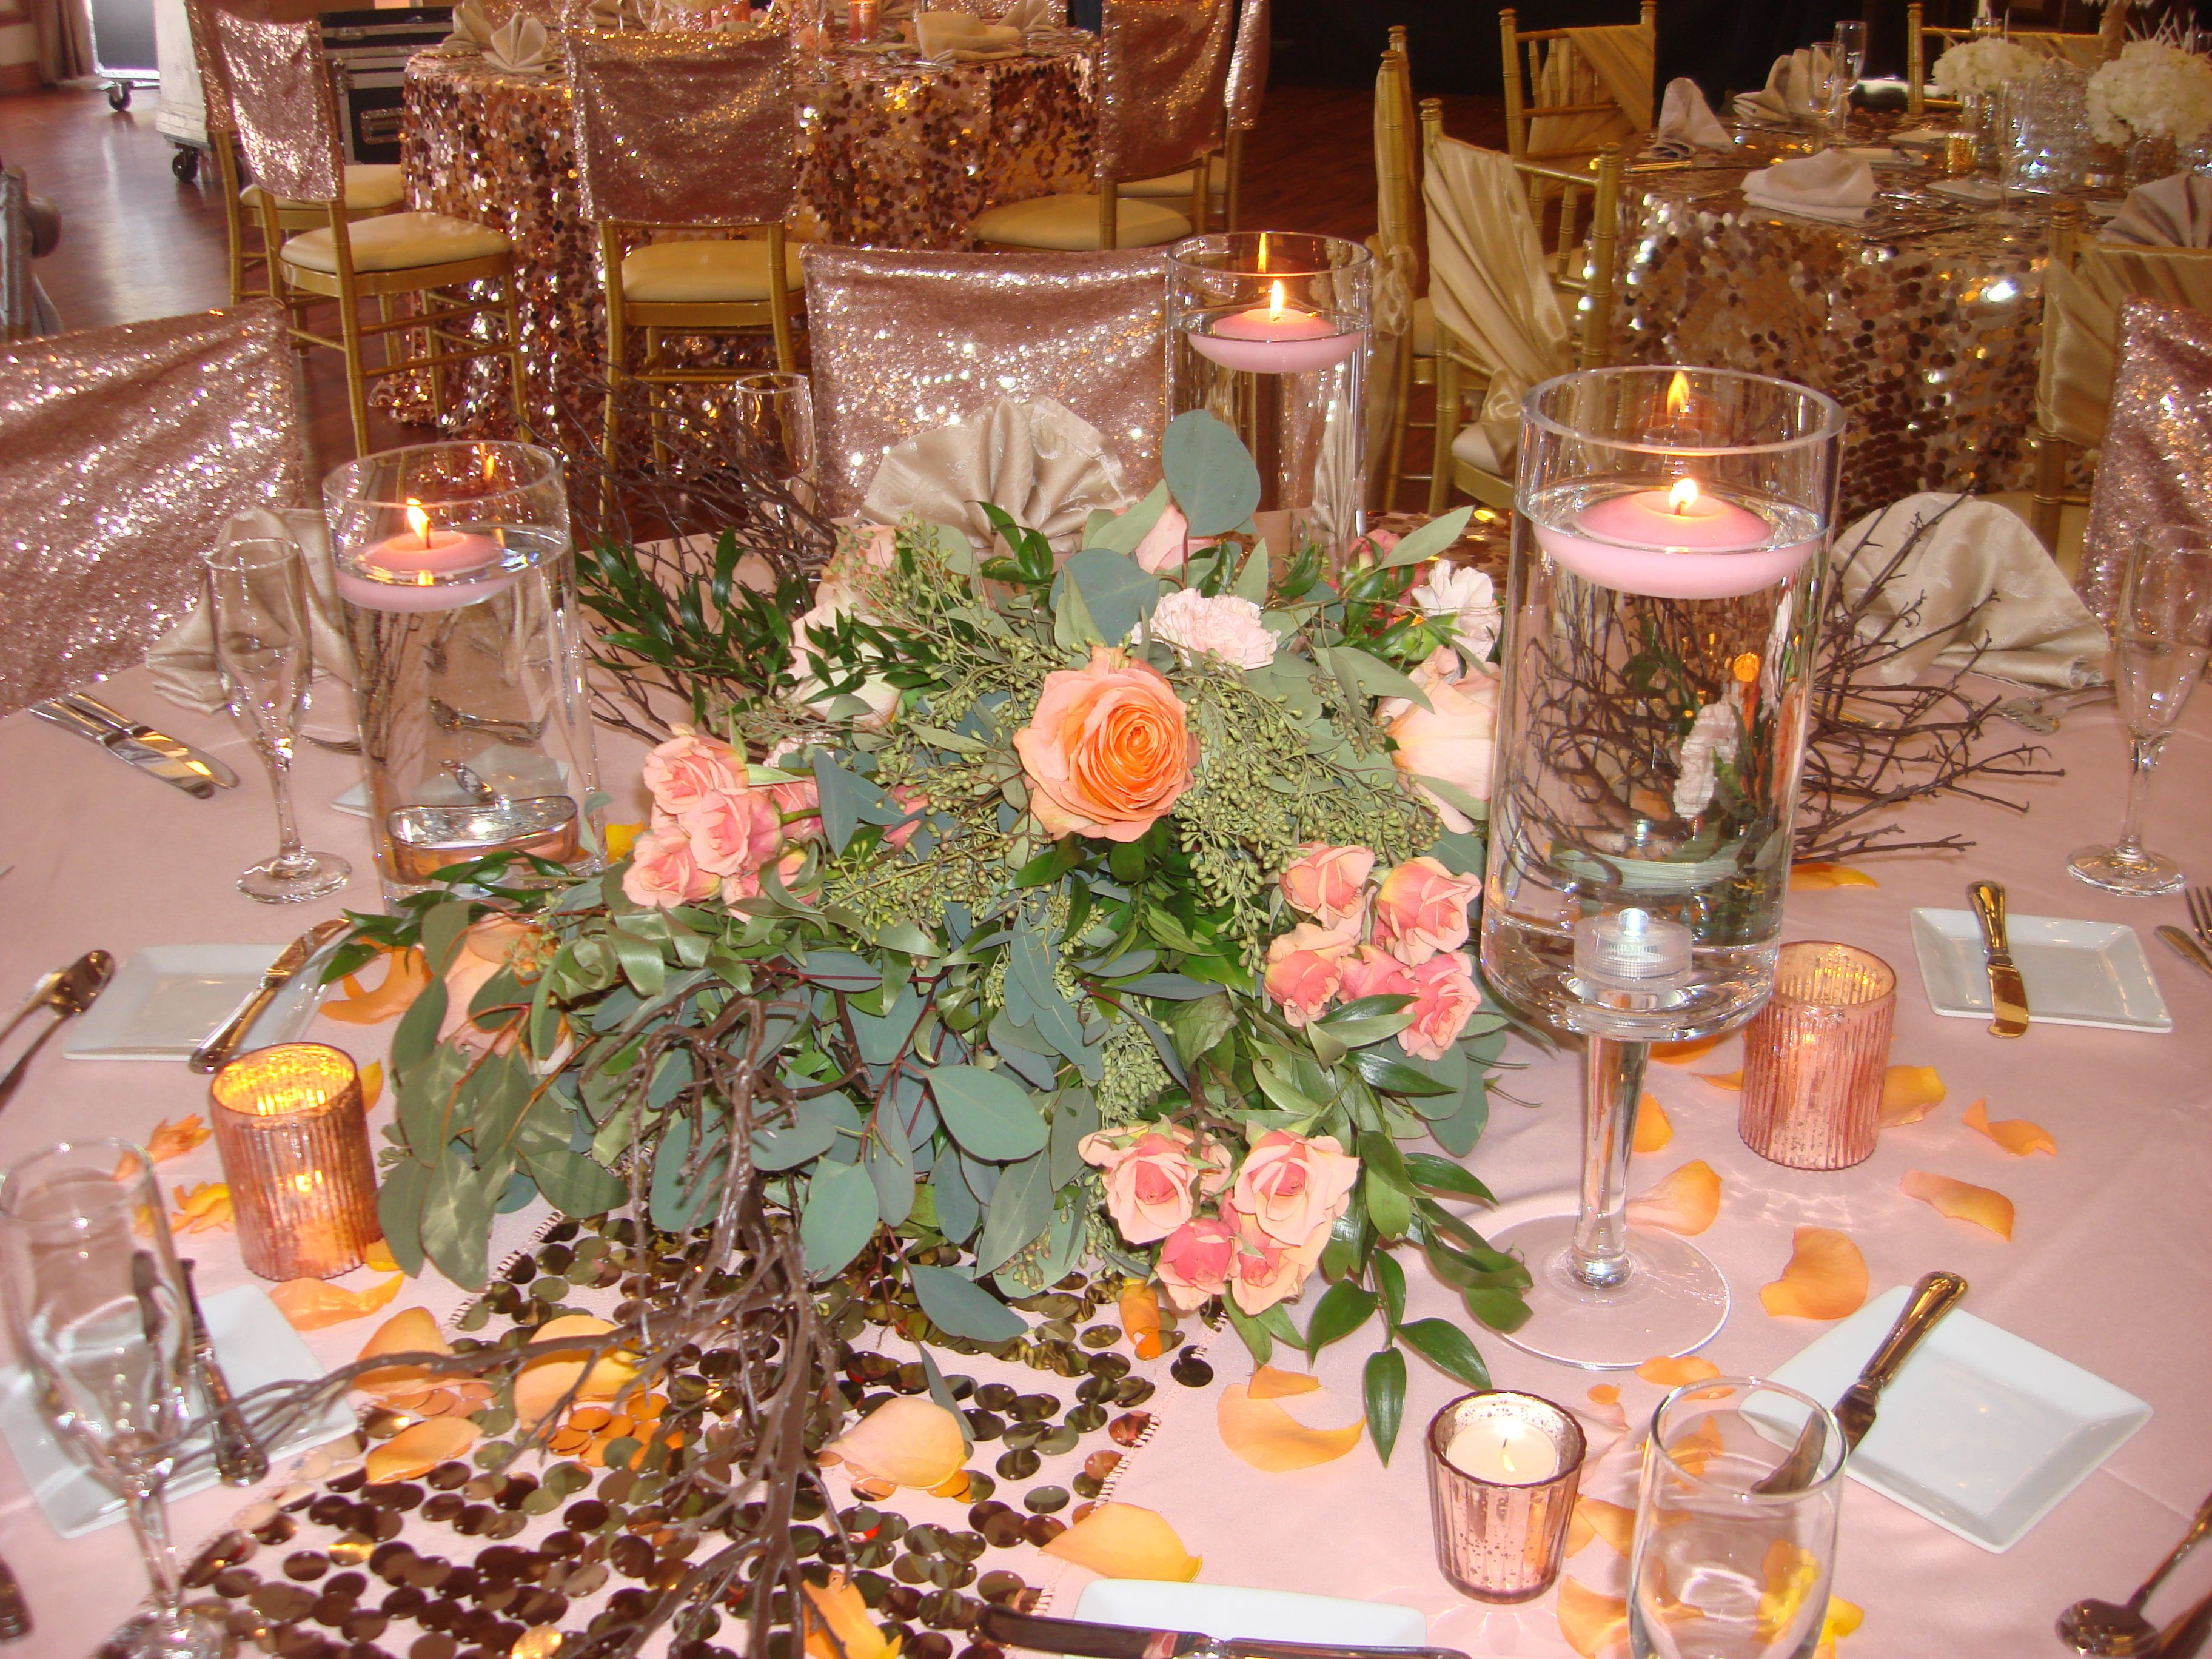 Rustic Branch Blush Pink Floating Candle Wedding Centerpiece Rental Floating Candle Centerpieces Wedding Pink Centerpieces Centerpiece Rentals